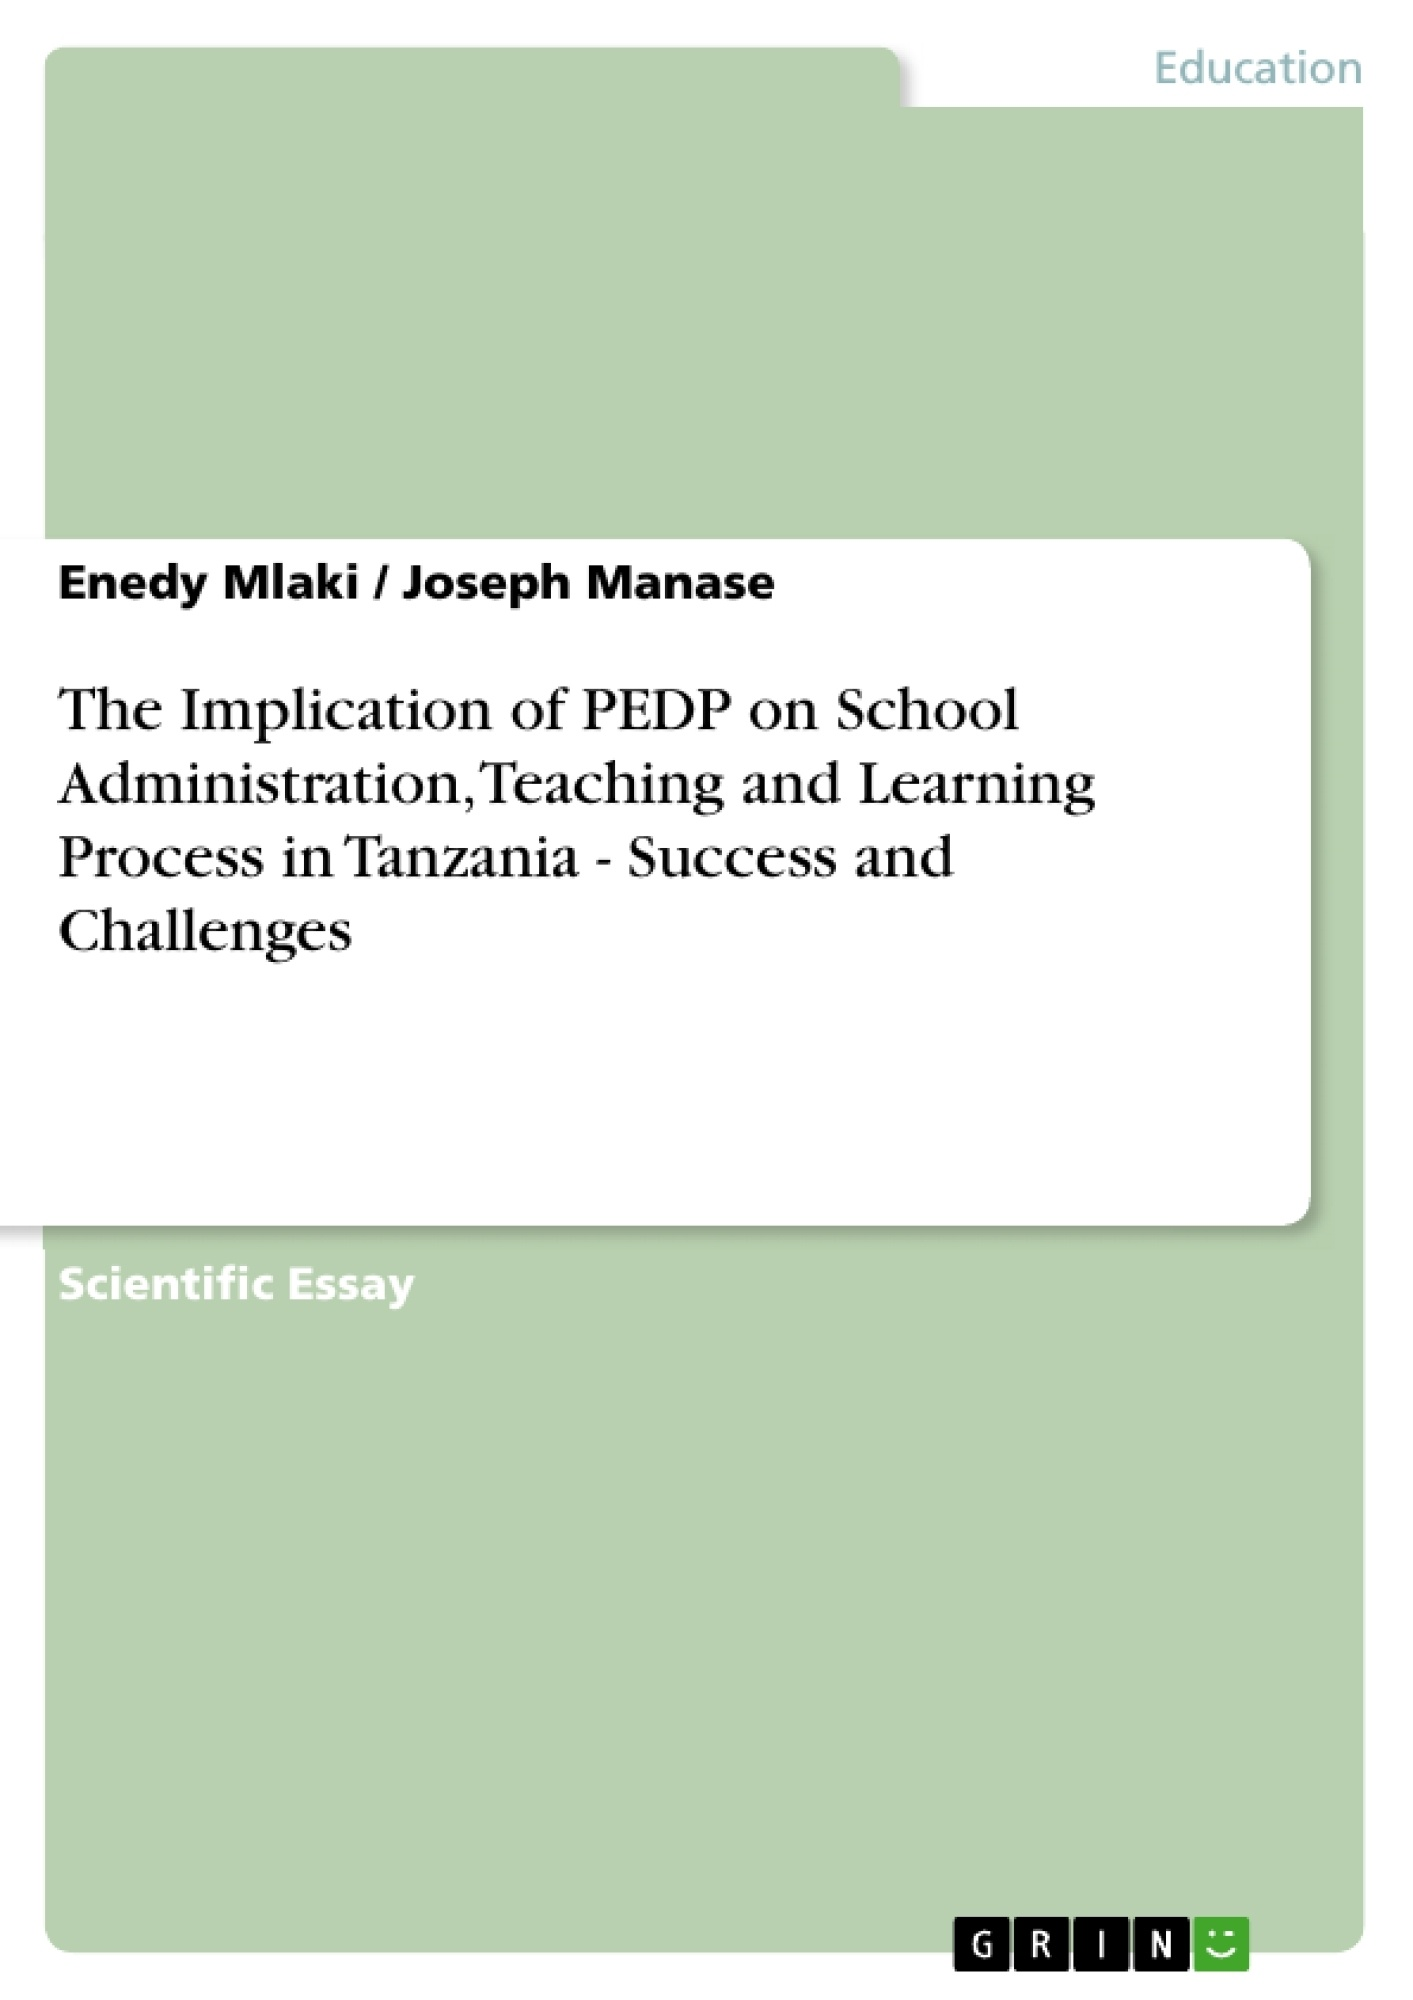 Title: The Implication of PEDP on School Administration, Teaching and Learning Process in Tanzania - Success and Challenges